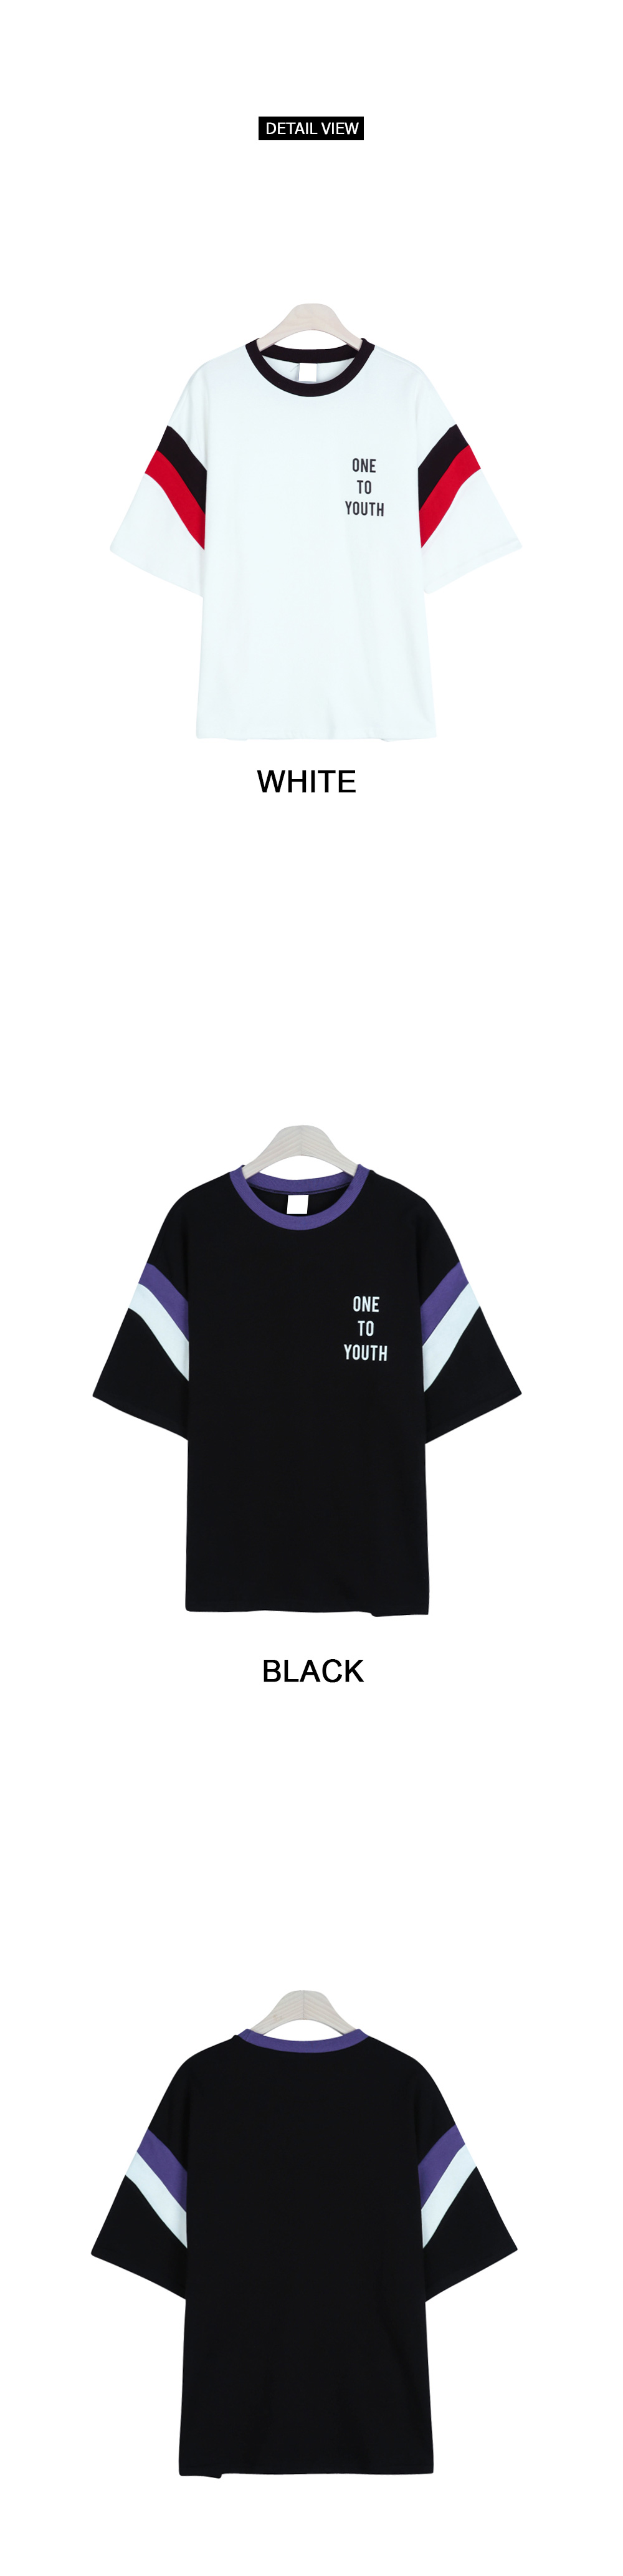 Youth color short sleeve shirt (t4640)